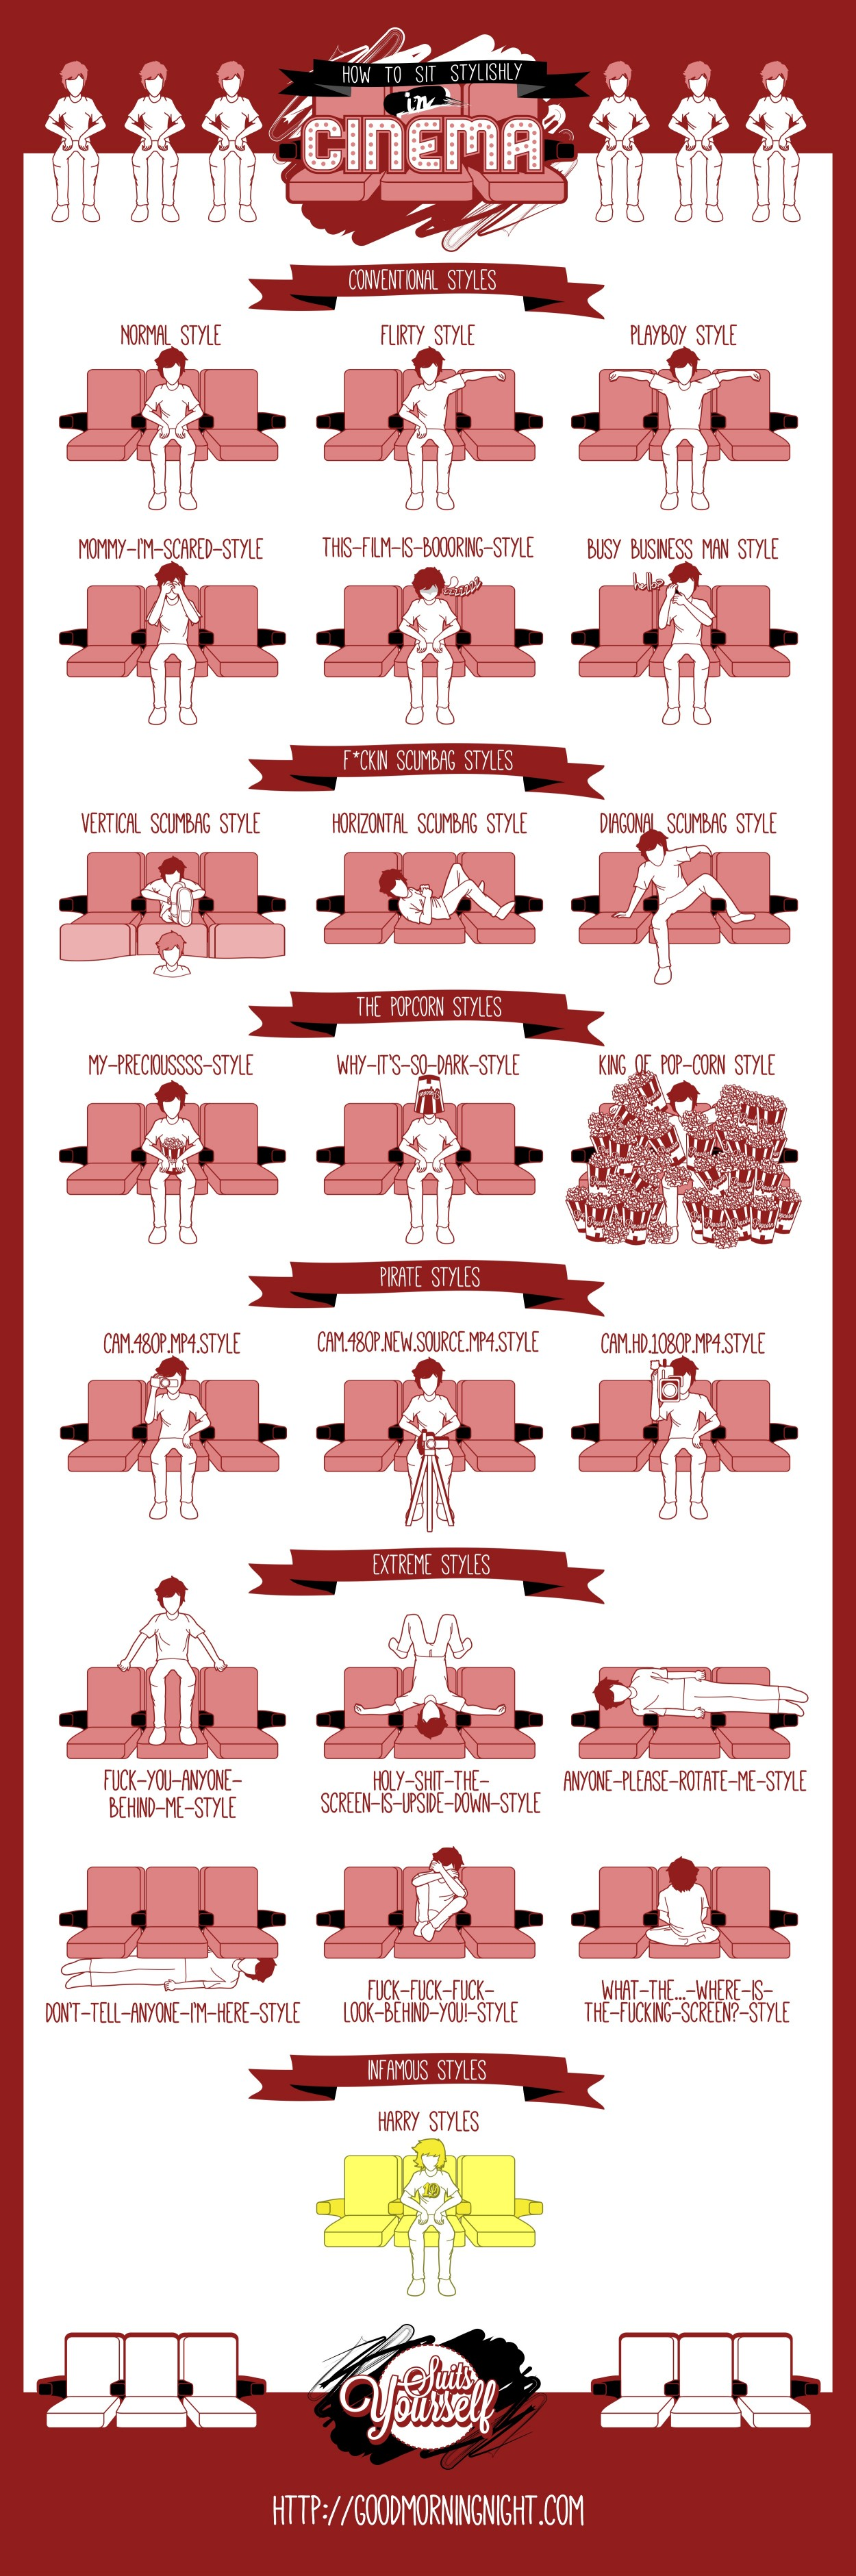 how-to-sit-stylishly-in-cinema_524a8bf60c0a3.jpg